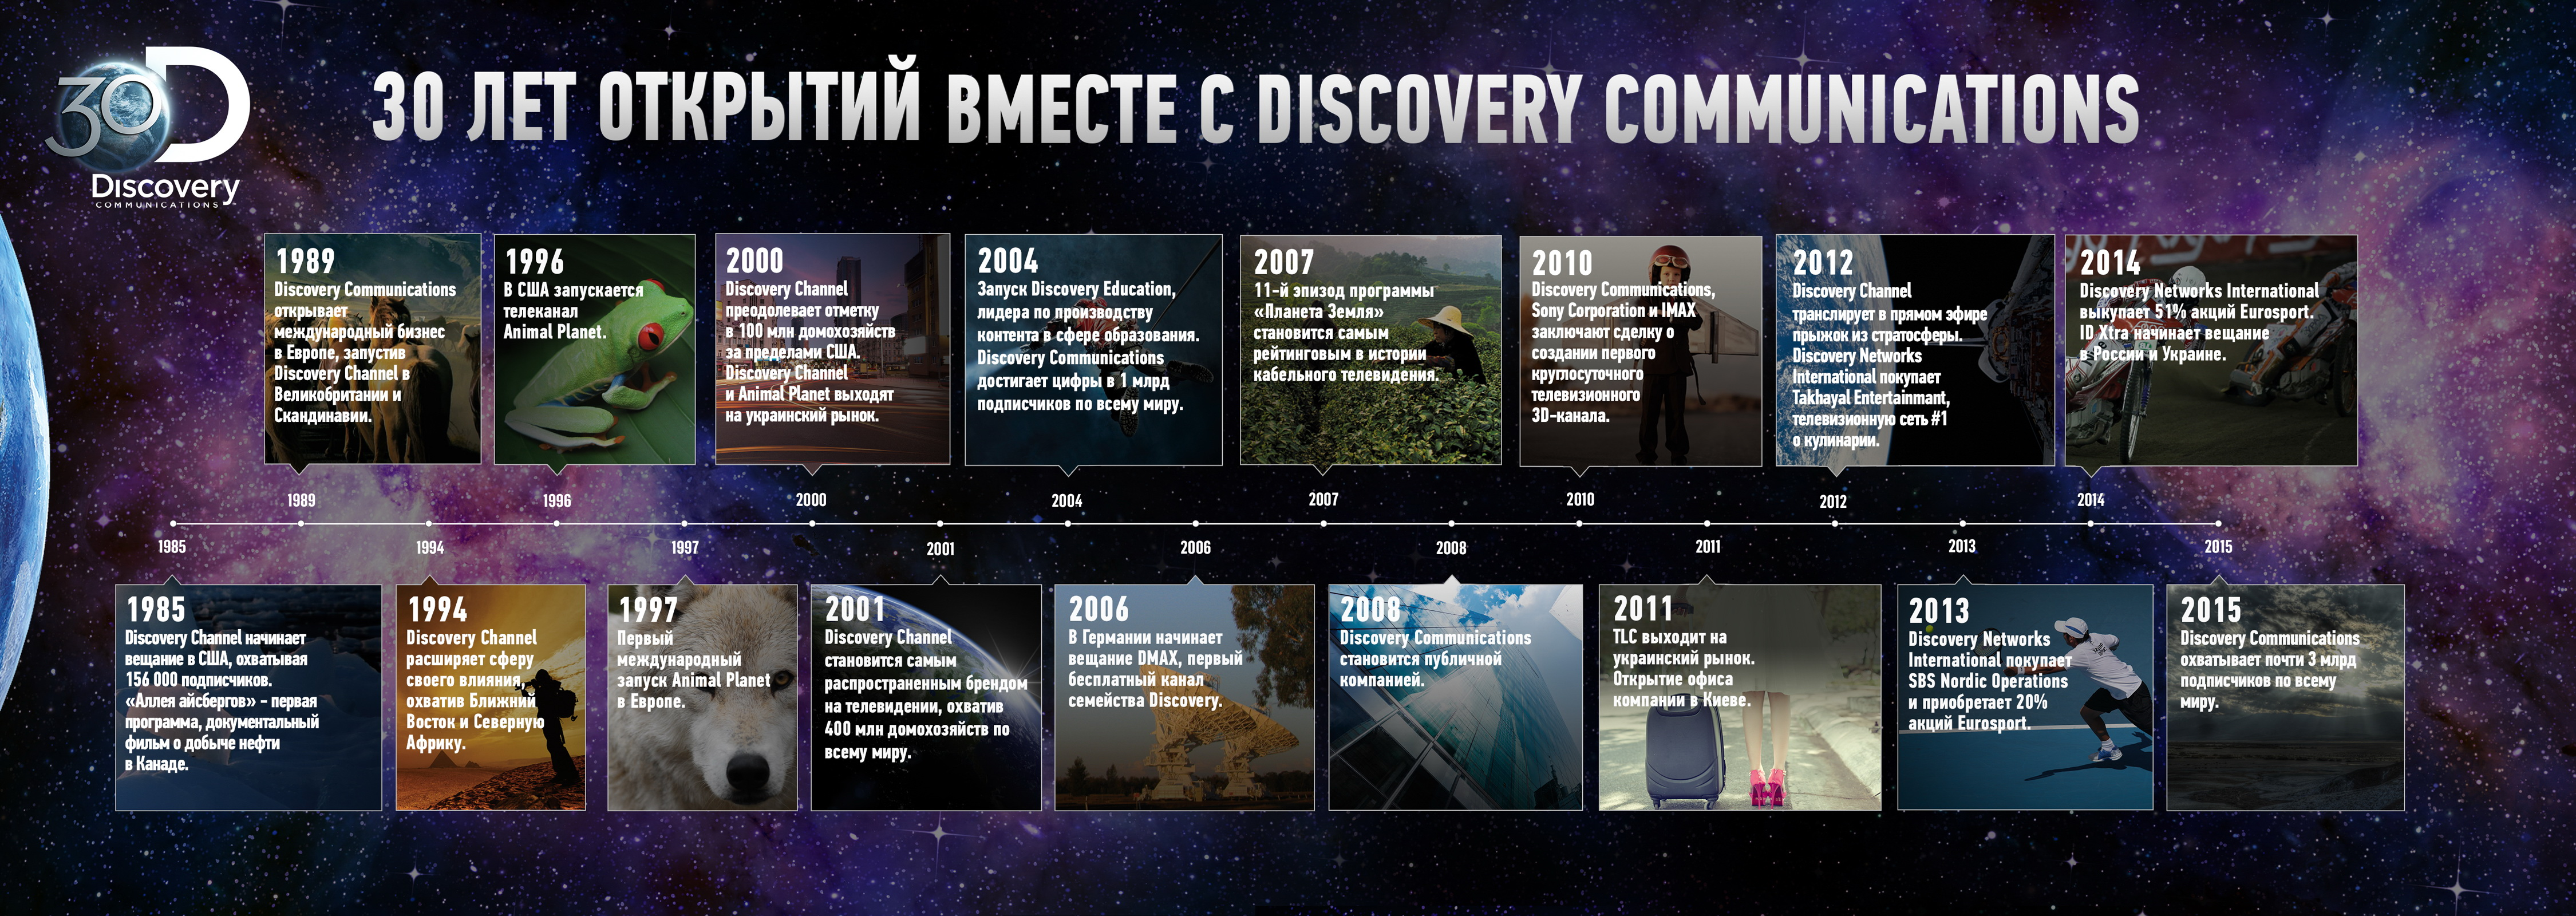 Discovery-Timeline